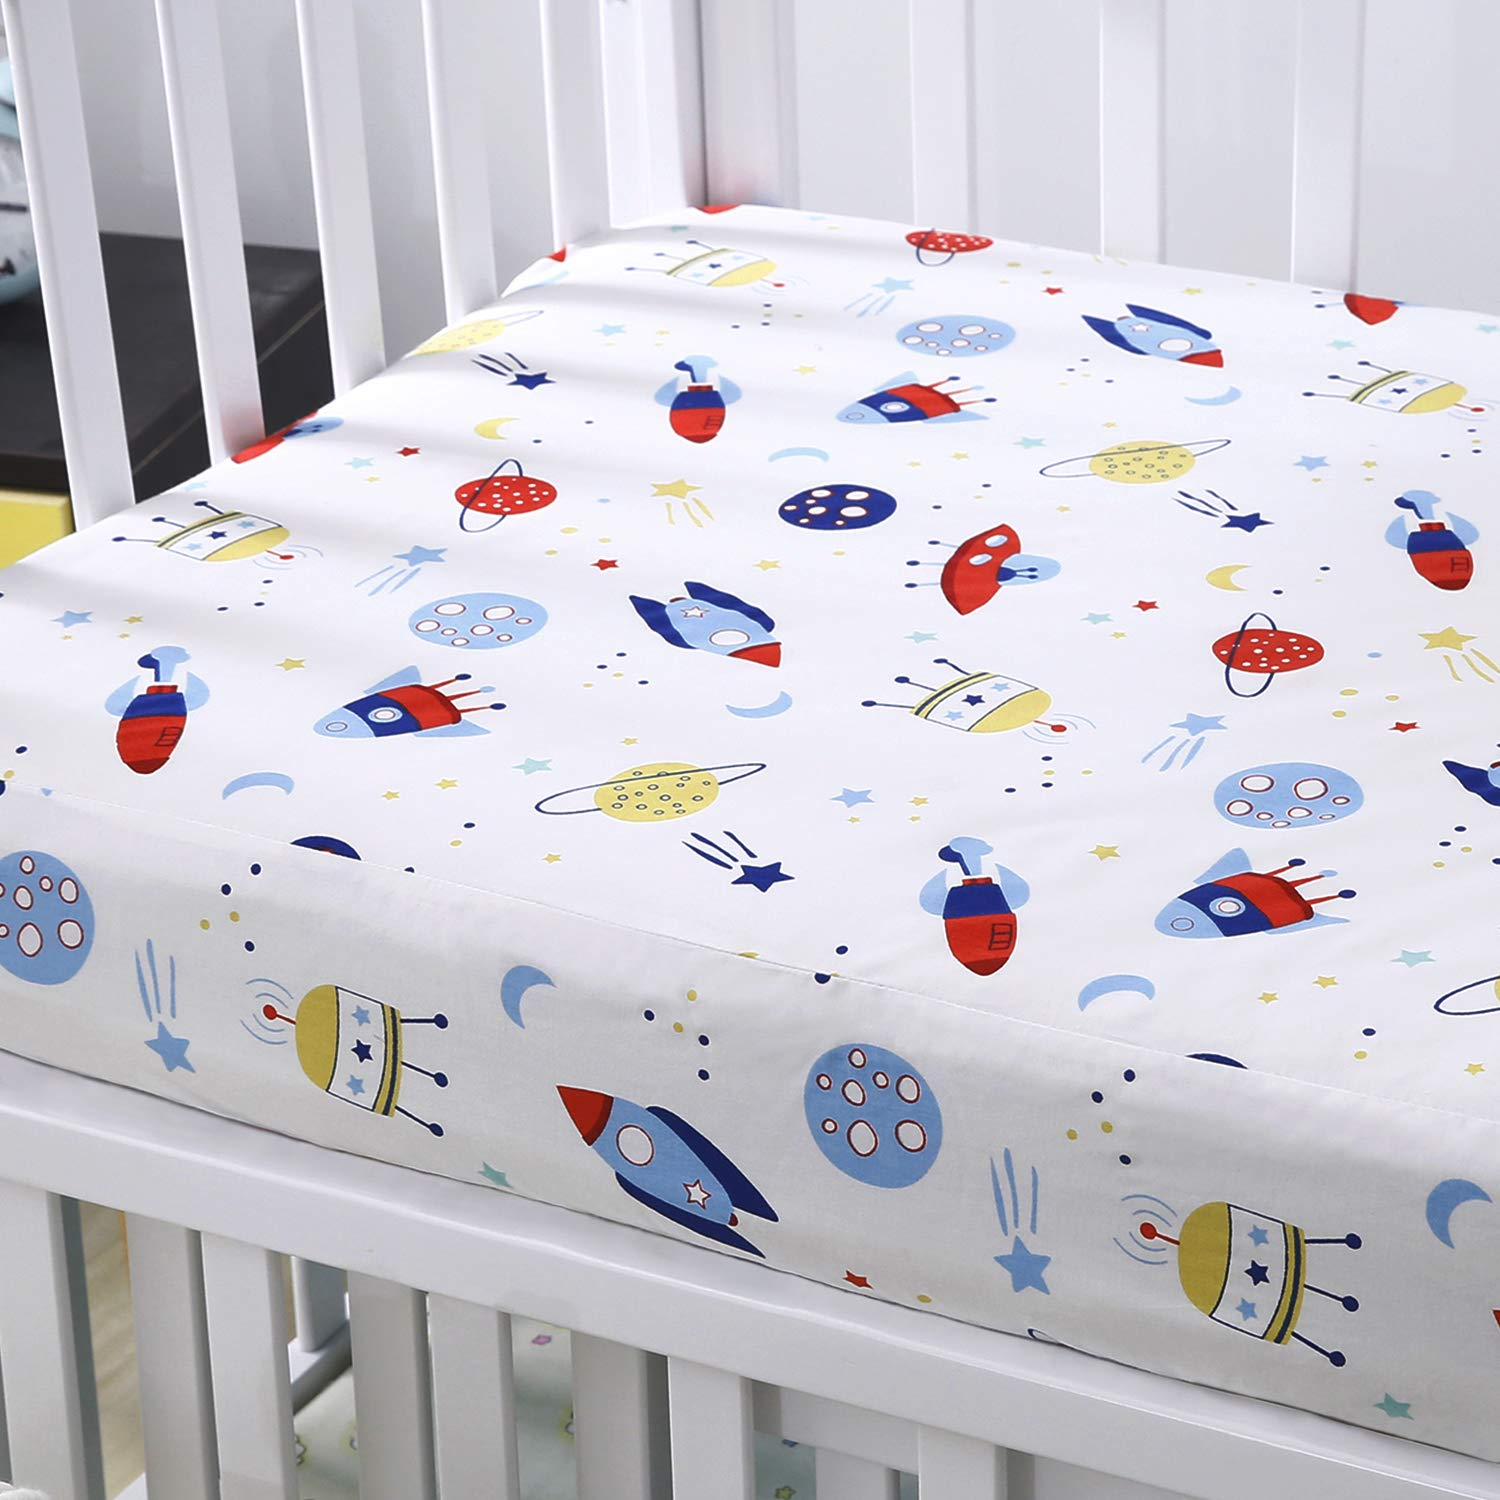 Cok Fitted Crib Sheet, 100% Cotton, Breathable Cozy and Hypoallergenic Baby Crib Sheet for Standard Crib and Toddle Mattress. (1 Pack, Planet)